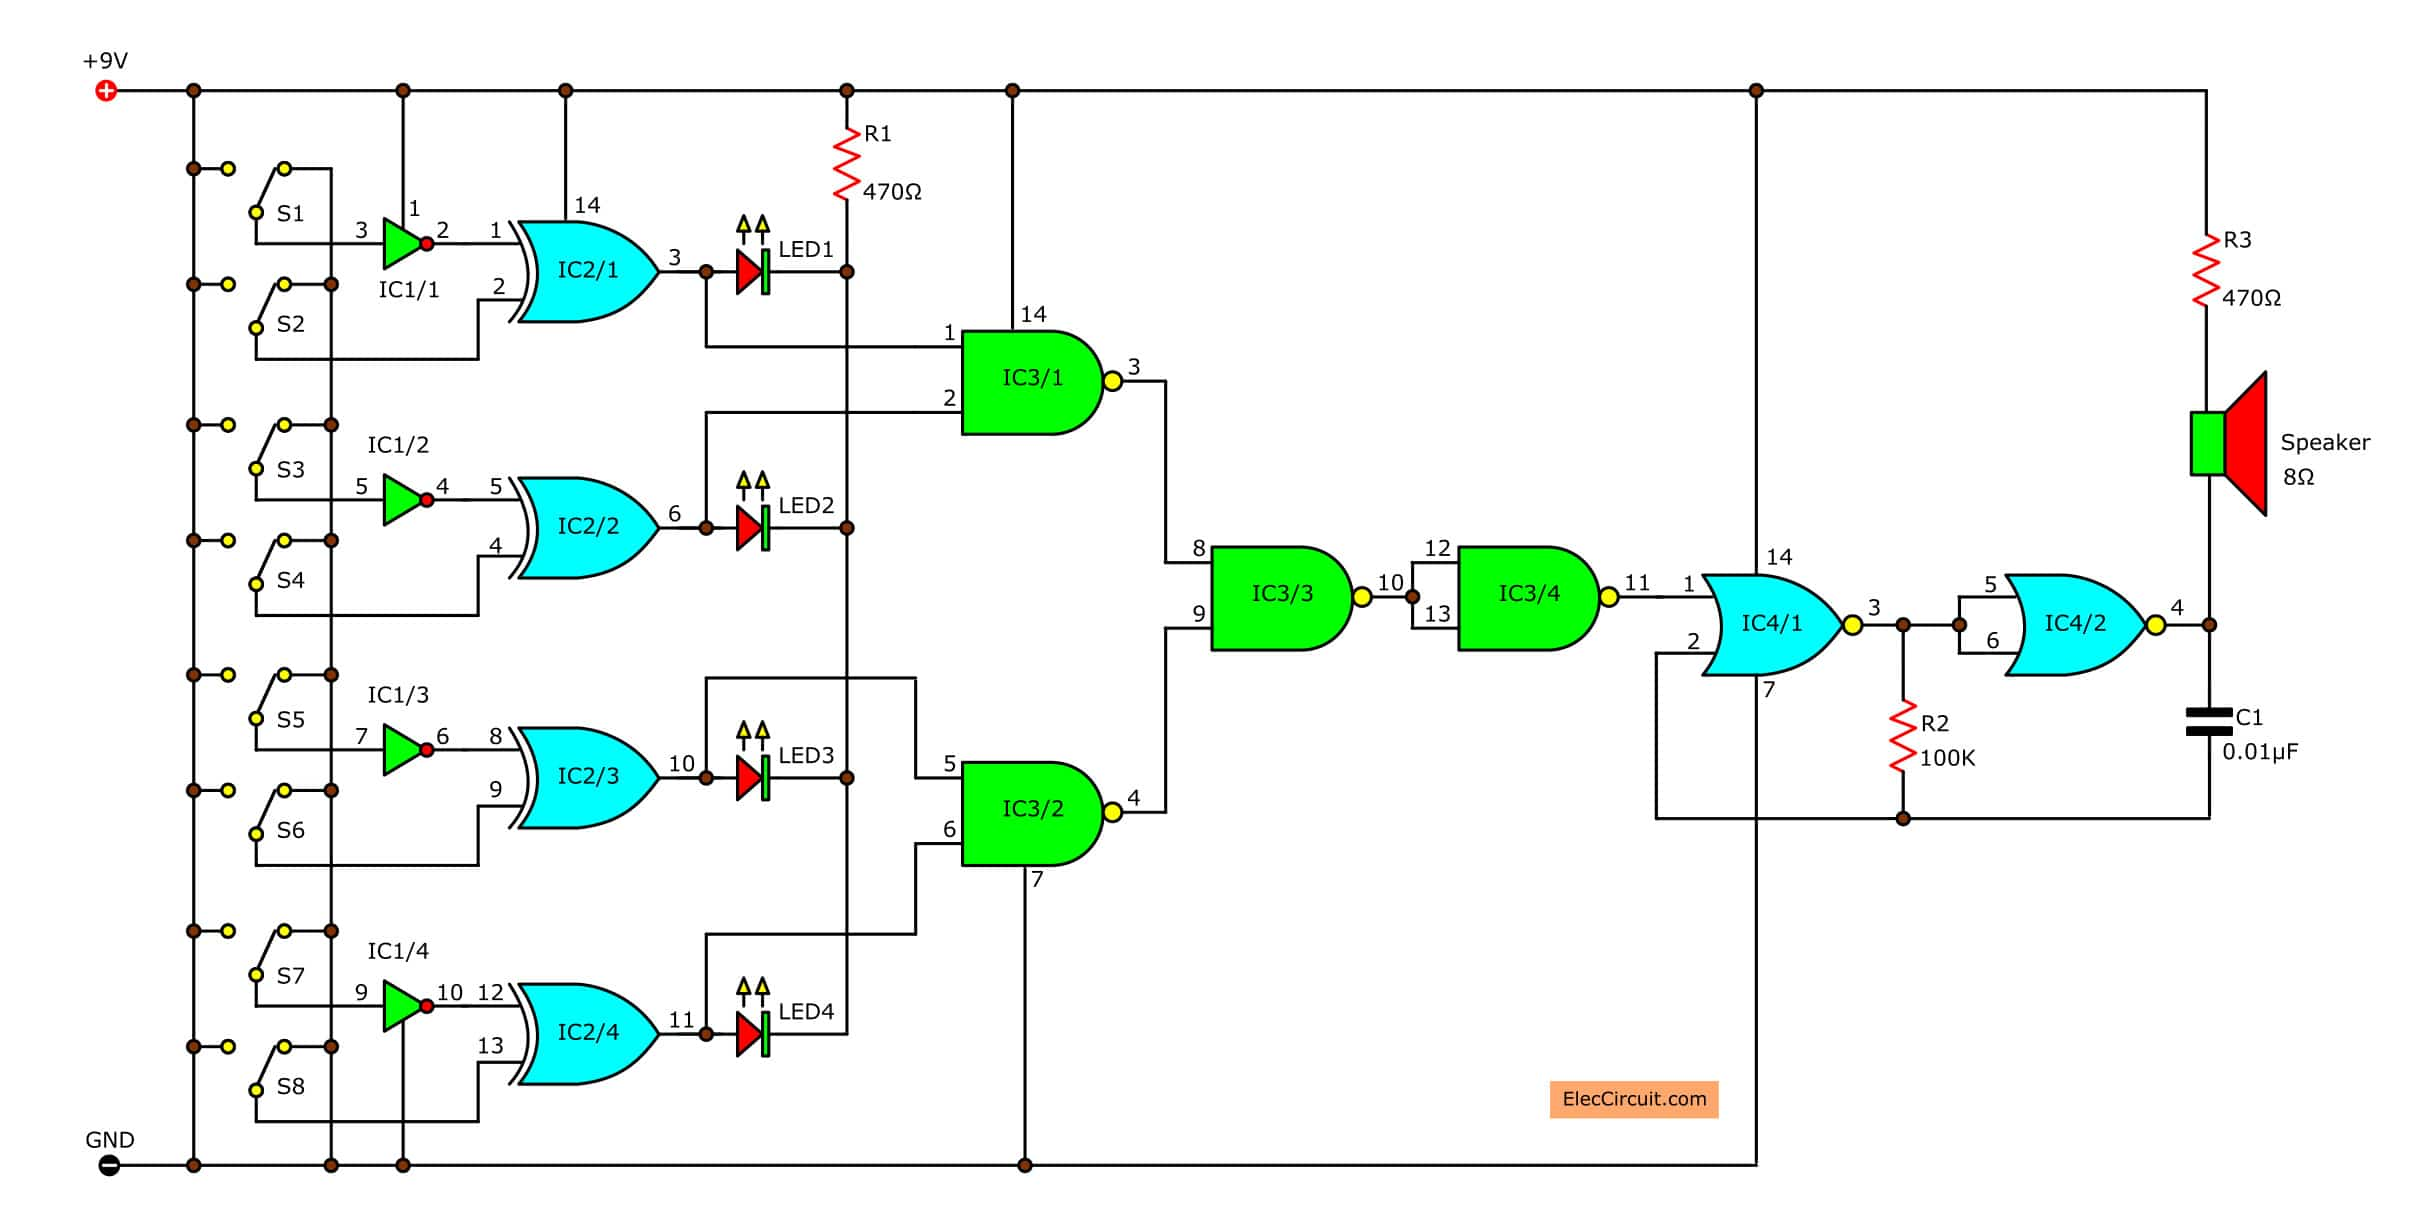 Circuit Diagram Using Logic Gates Wiring Library Design A 2bit Full Adder To Display Numbe Cheggcom The Of Logical Guessing Game